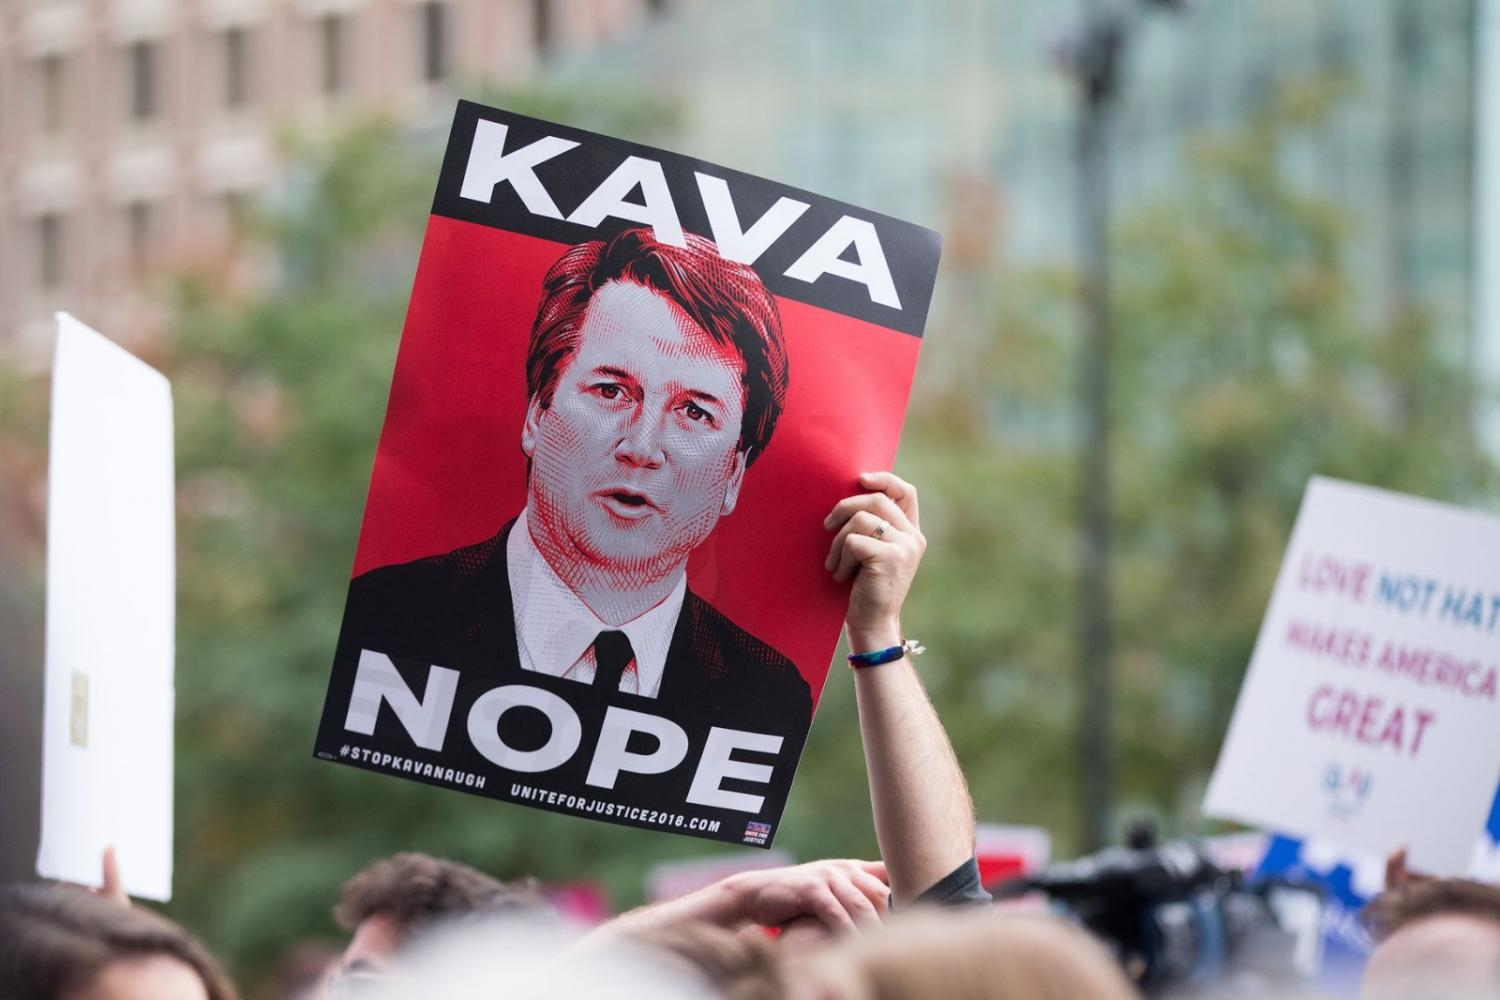 Sexual assault allegations aside, Kavanaugh is unfit to serve on the Supreme Court